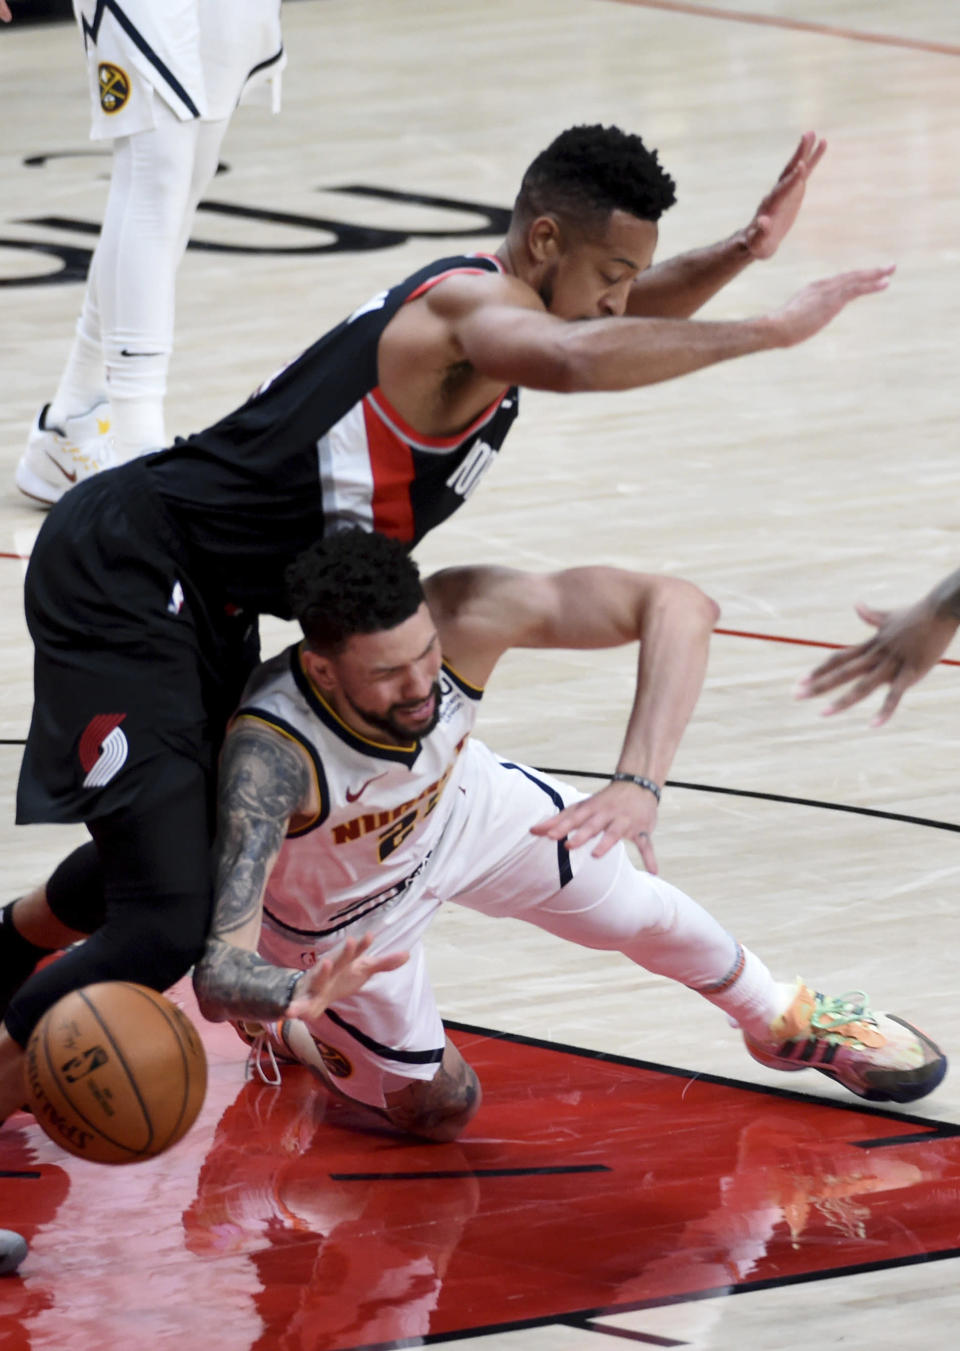 Denver Nuggets guard Austin Rivers, right, falls to the court as Portland Trail Blazers guard CJ McCollum, left, defends during the first half of Game 4 of an NBA basketball first-round playoff series in Portland, Ore., Saturday, May 29, 2021. McCollum was called for a foul on the play. (AP Photo/Steve Dykes)